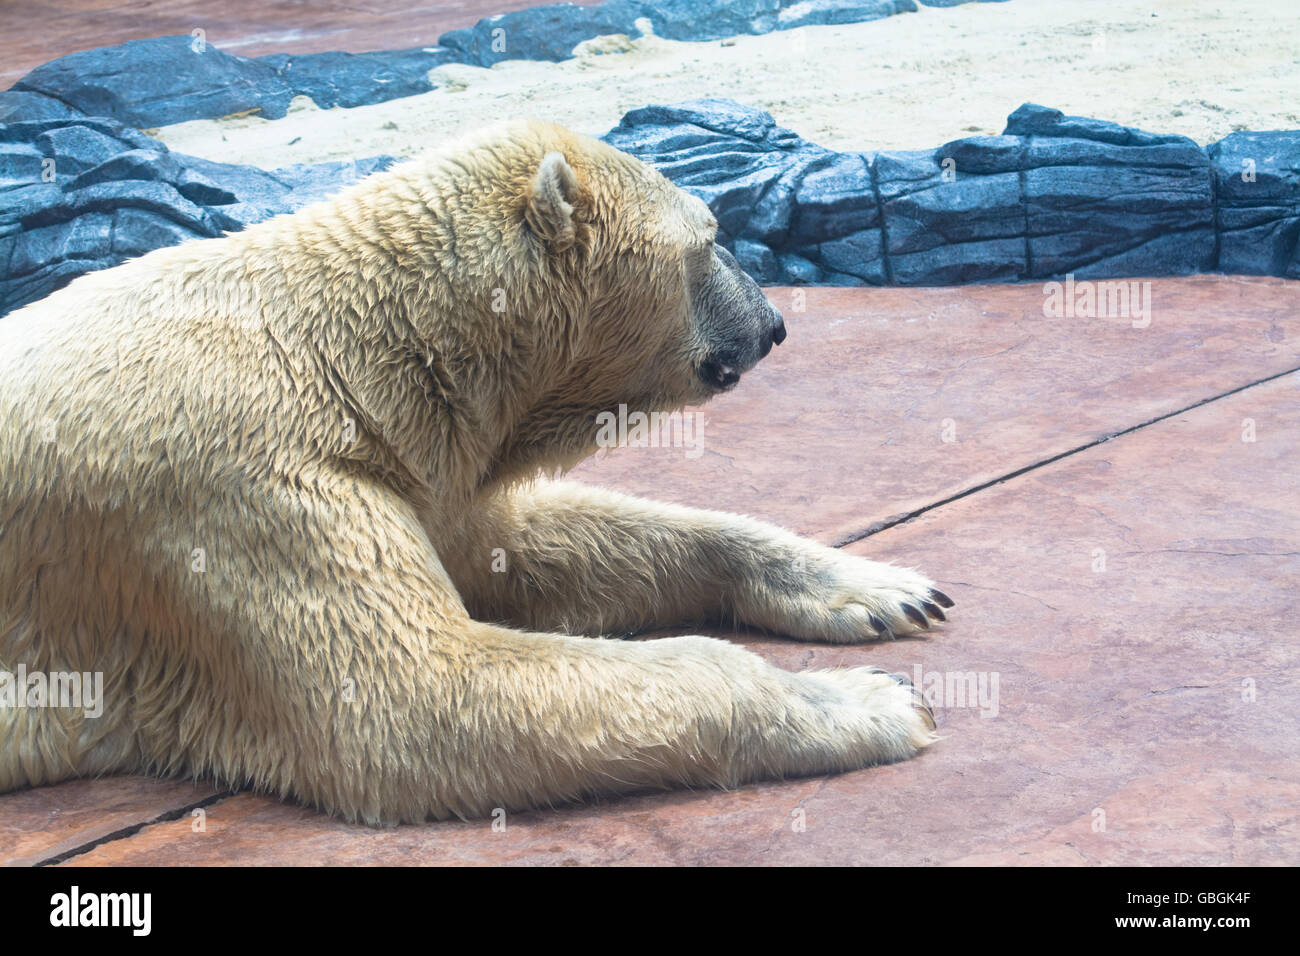 Side View of Relaxing Polar Bear at Zoo - Stock Image